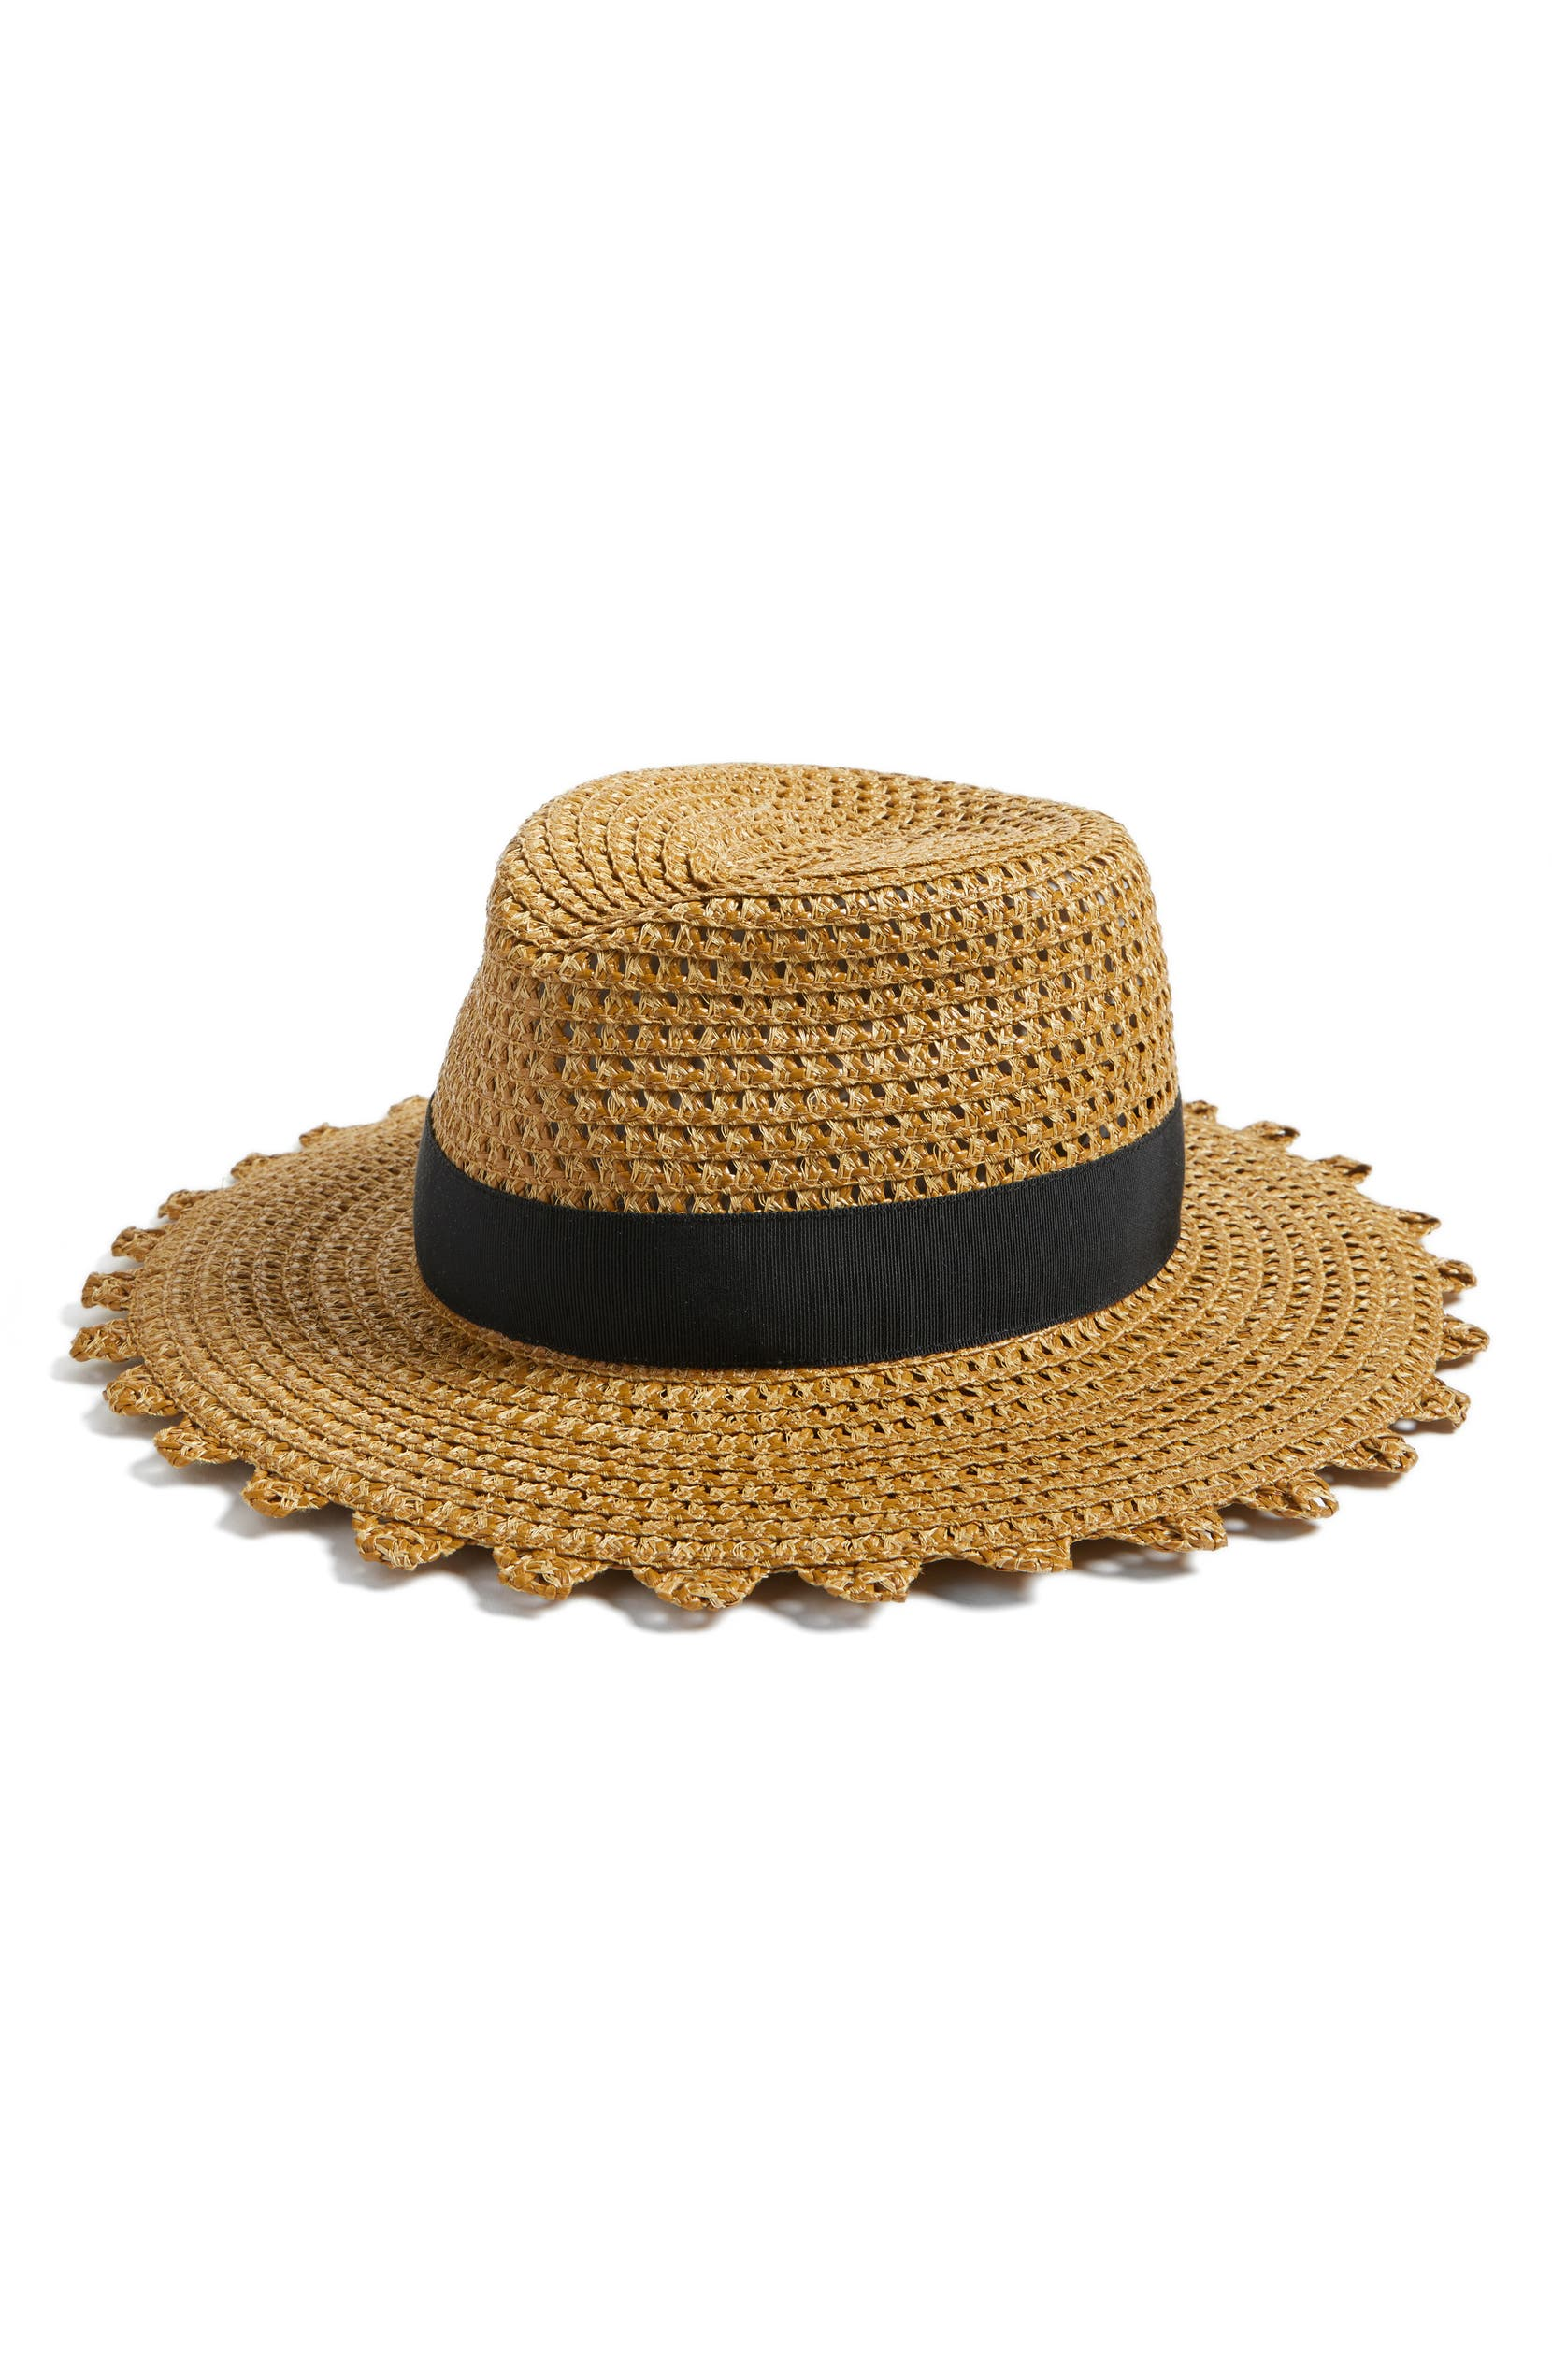 Eric Javits Cannes Squishee® Straw Hat  3a34925a508